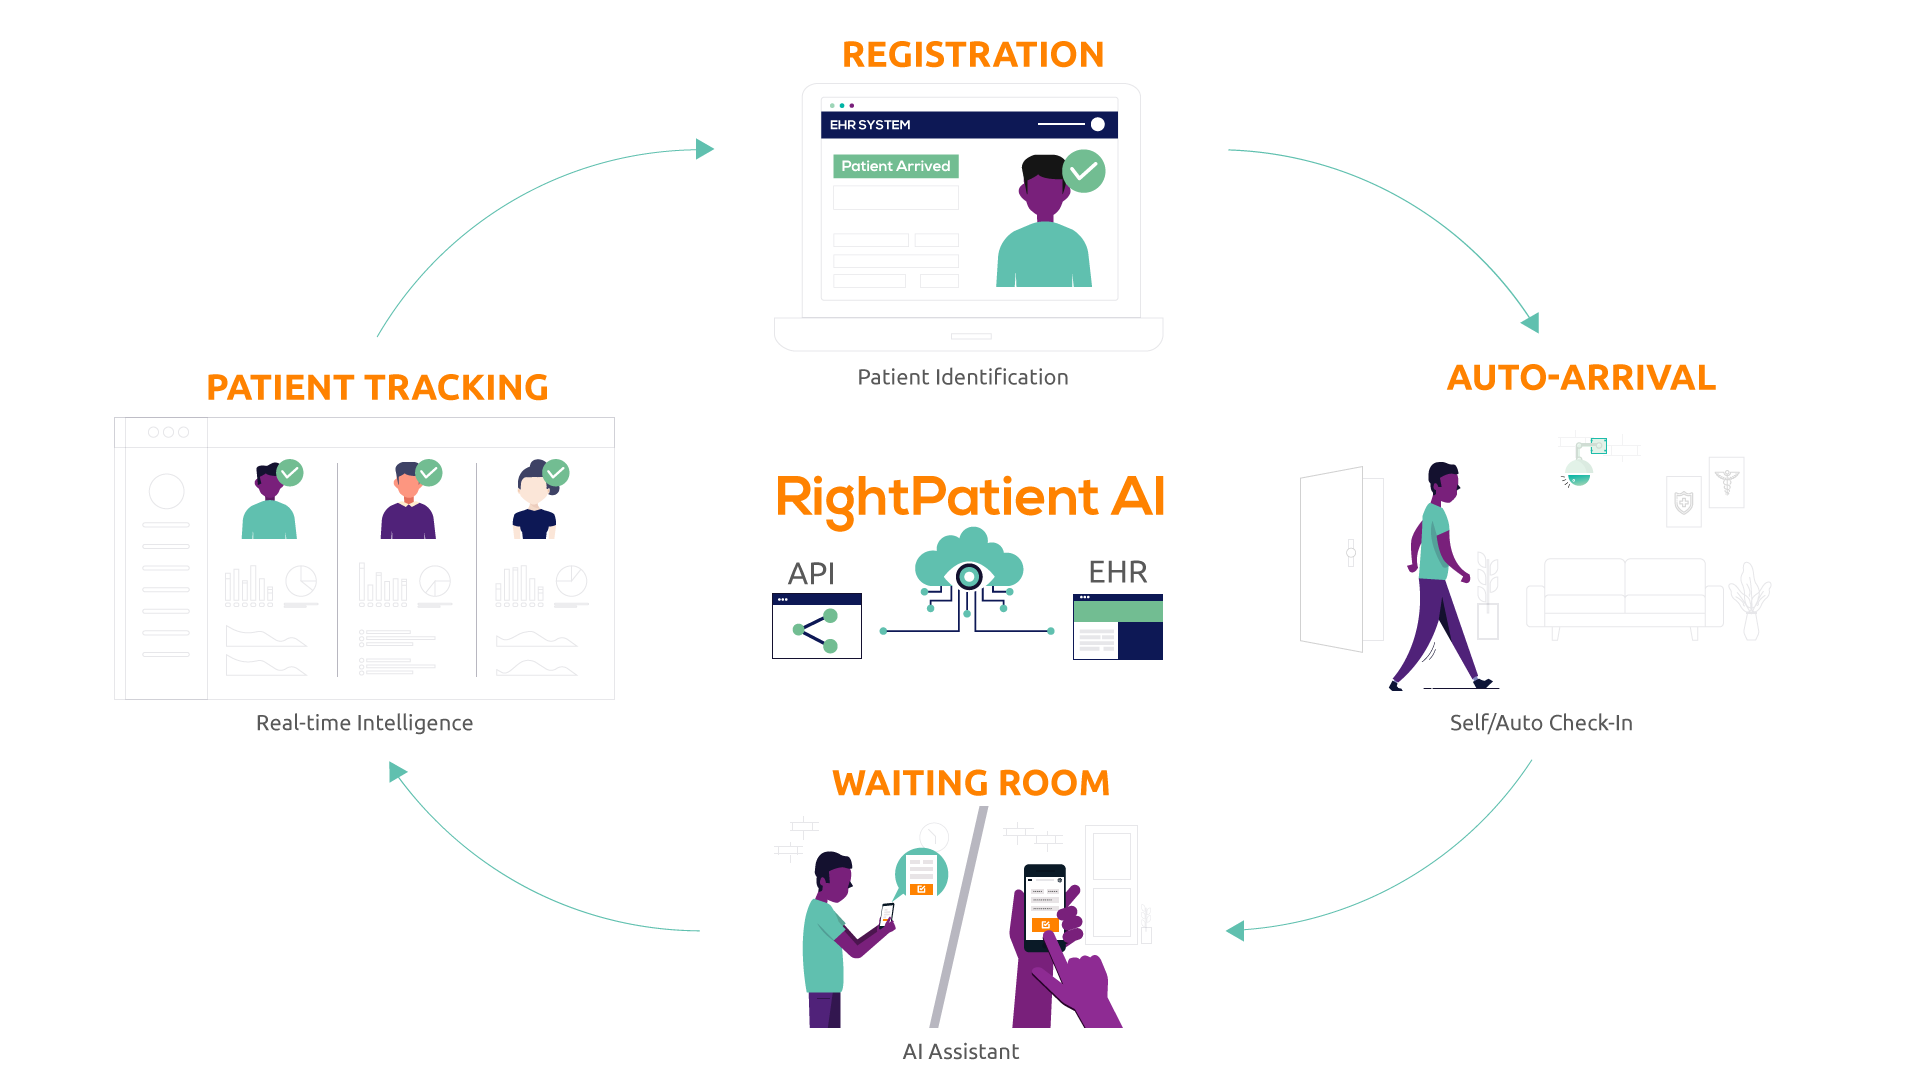 RightPatient: Personalize the Patient Experience